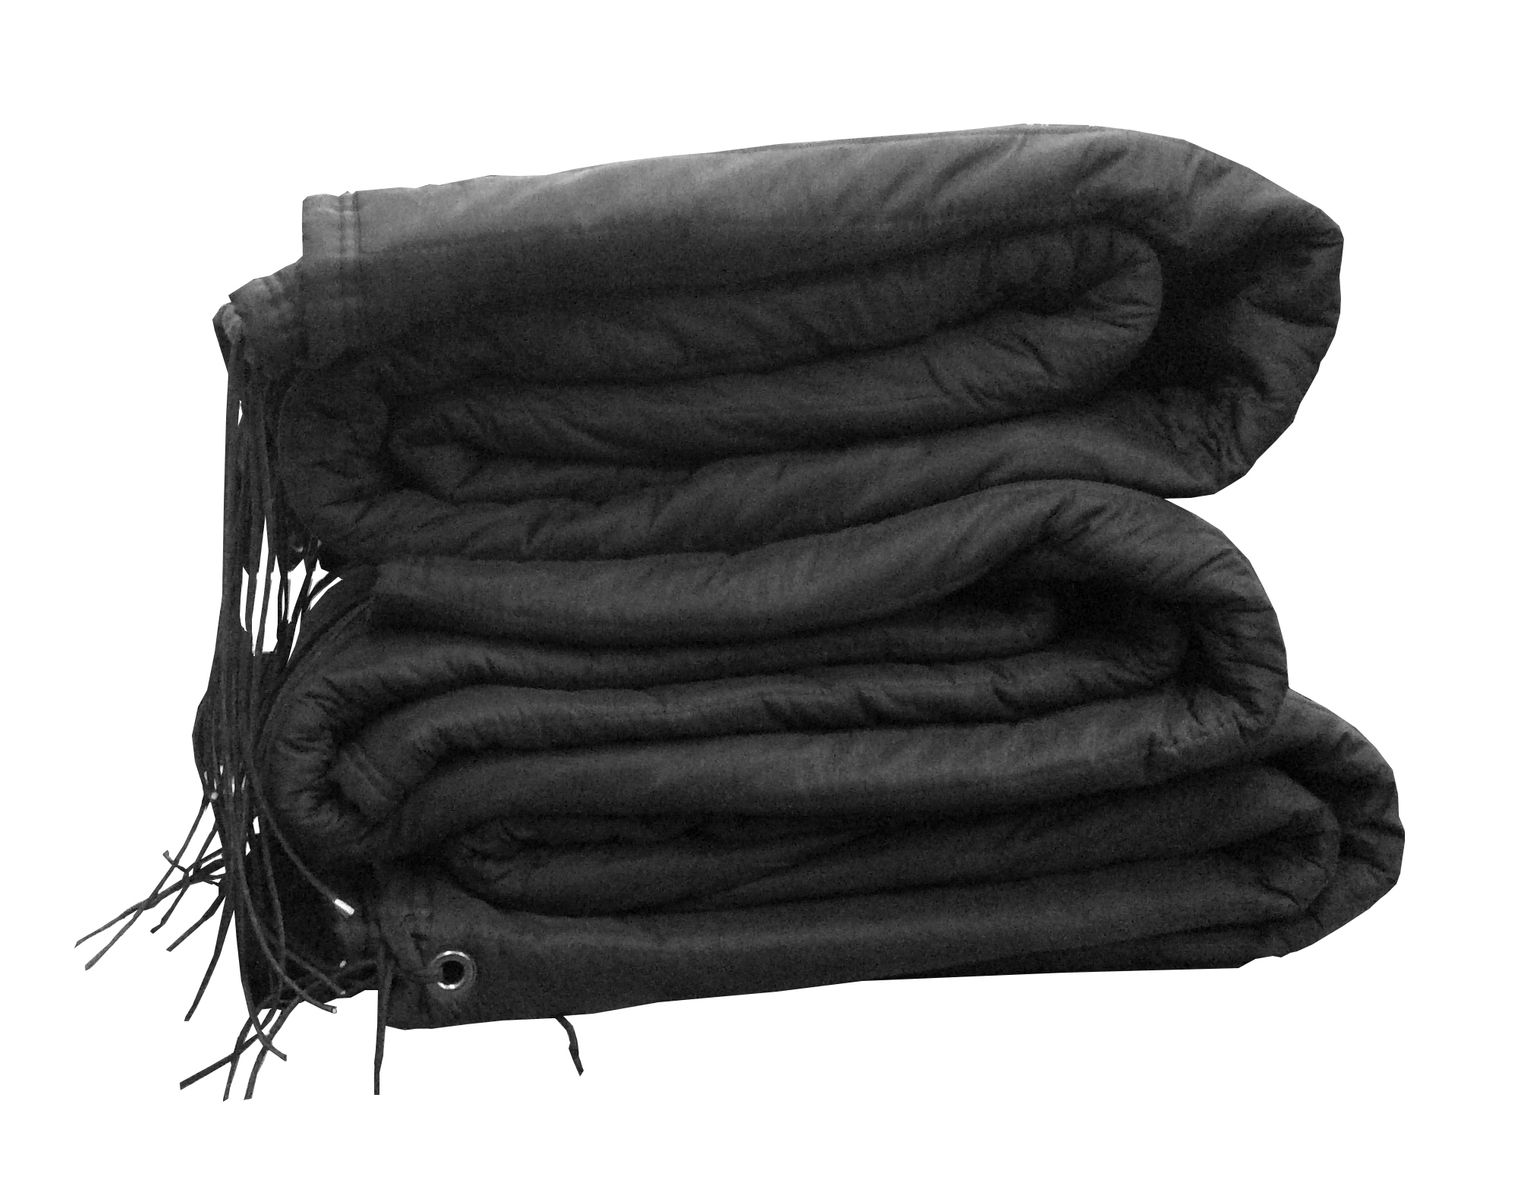 Acoustic Sound Blanket in black is at Hollywood Sound Systems